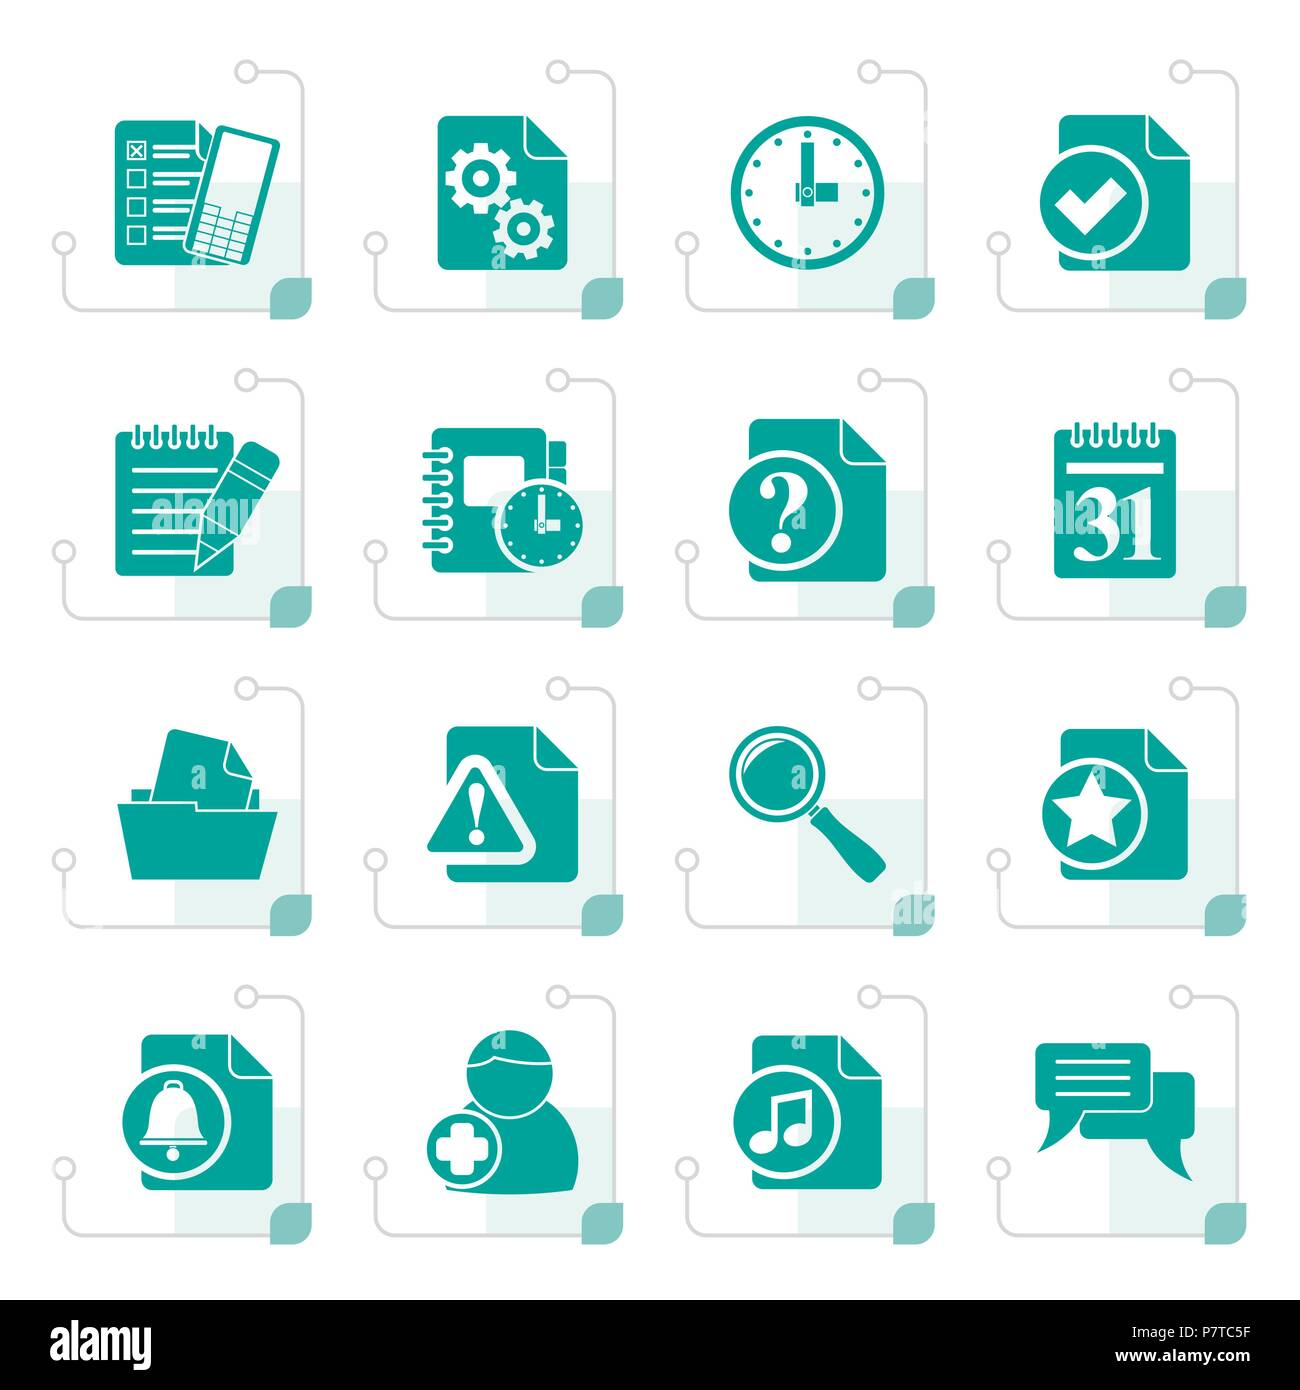 Stylized Organizer, communication and connection icons - vector icon set - Stock Vector